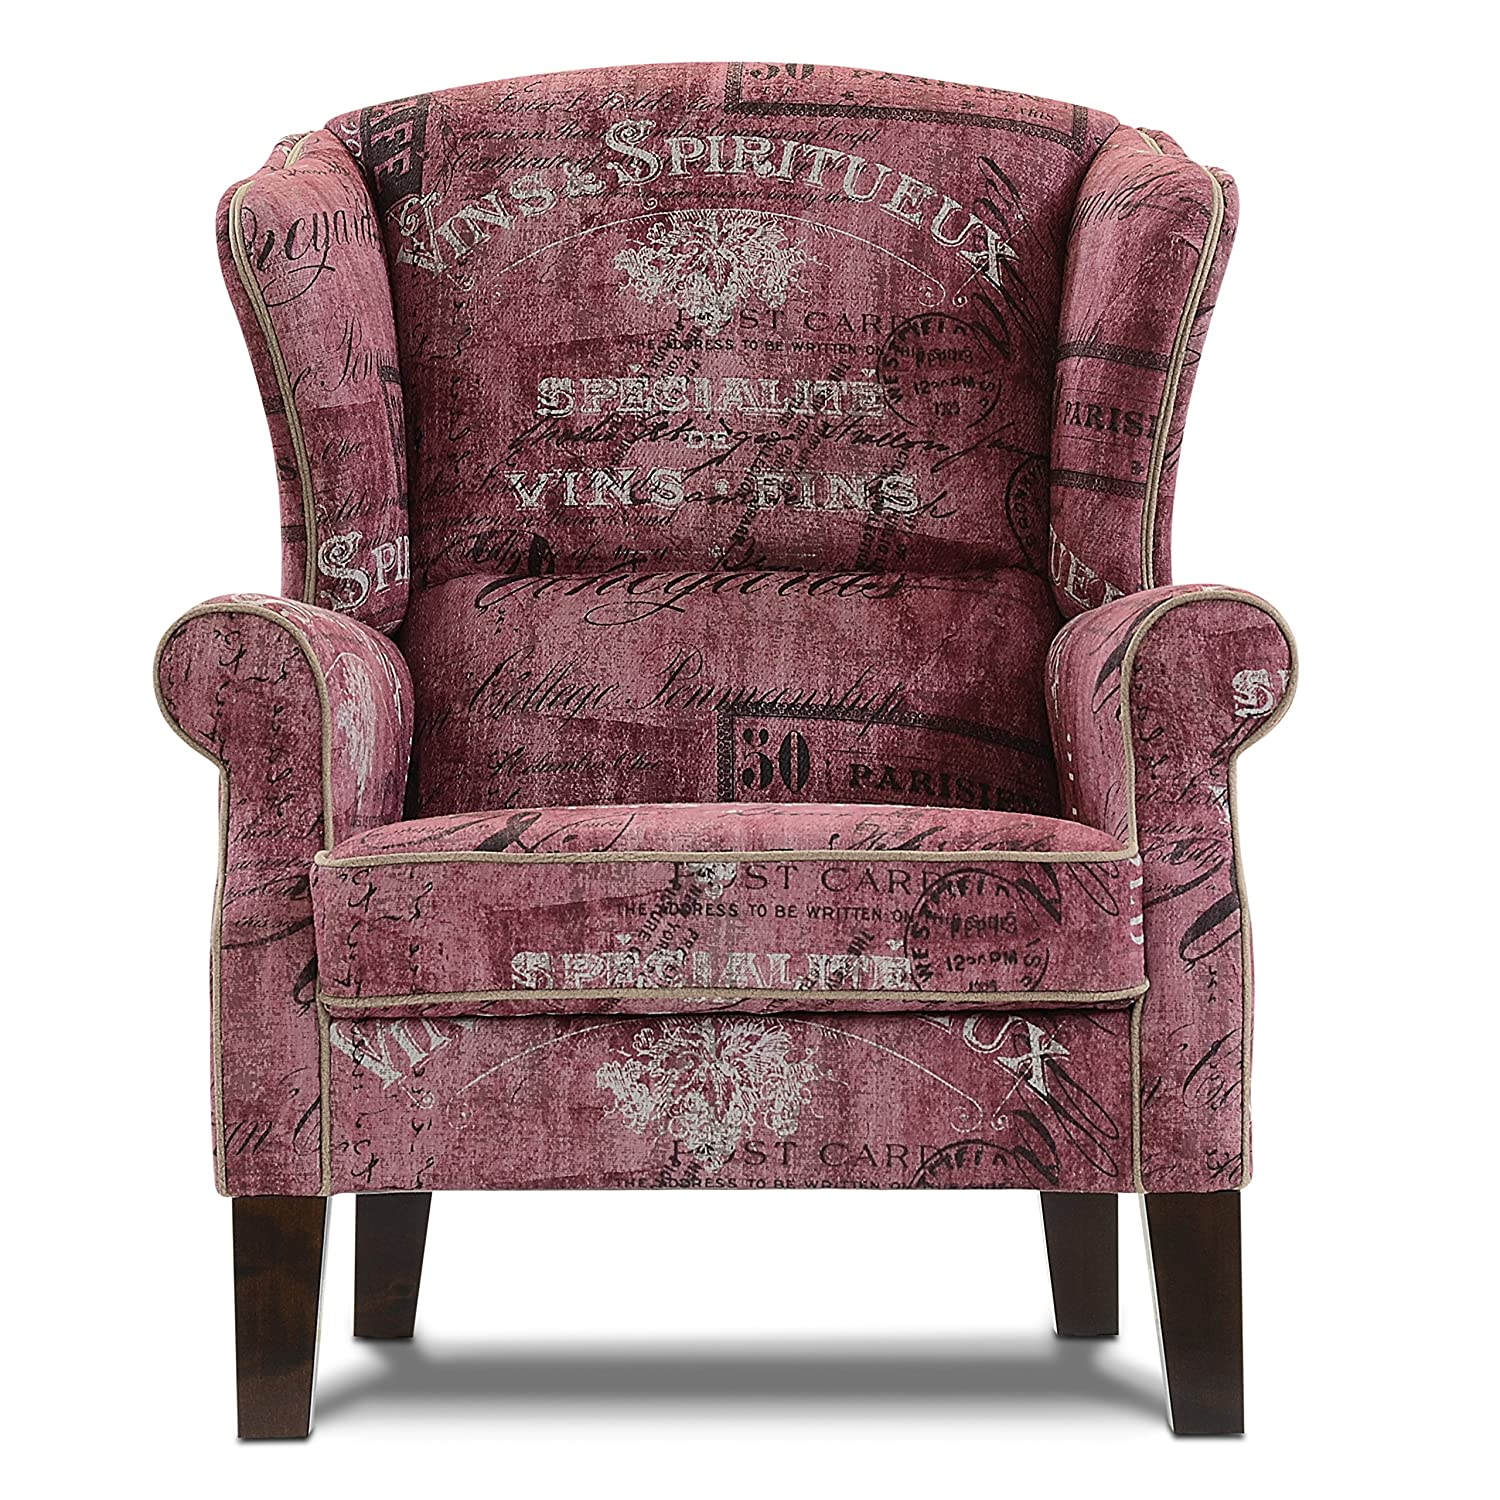 seadero sessel lorenzo ohrensessel relaxsessel flachgewebe im vintage look vino red. Black Bedroom Furniture Sets. Home Design Ideas